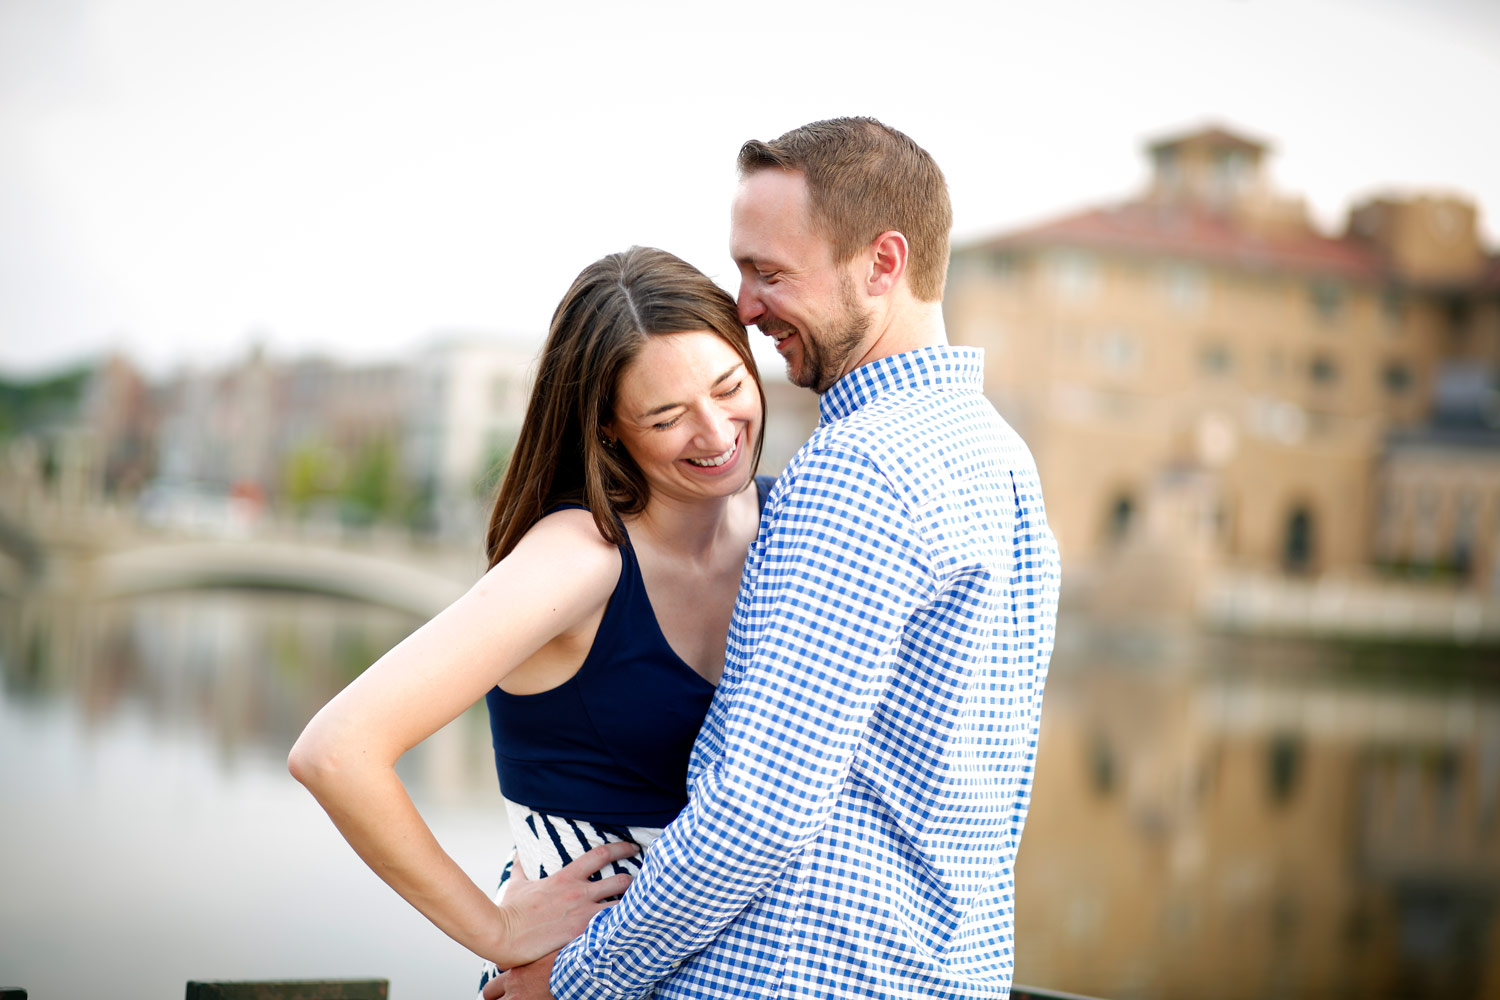 st-charles-fox-river-engagement-session-fox-valley-kane-country-tri-cities-ruthie-hauge-photography-hotel-baker.jpg